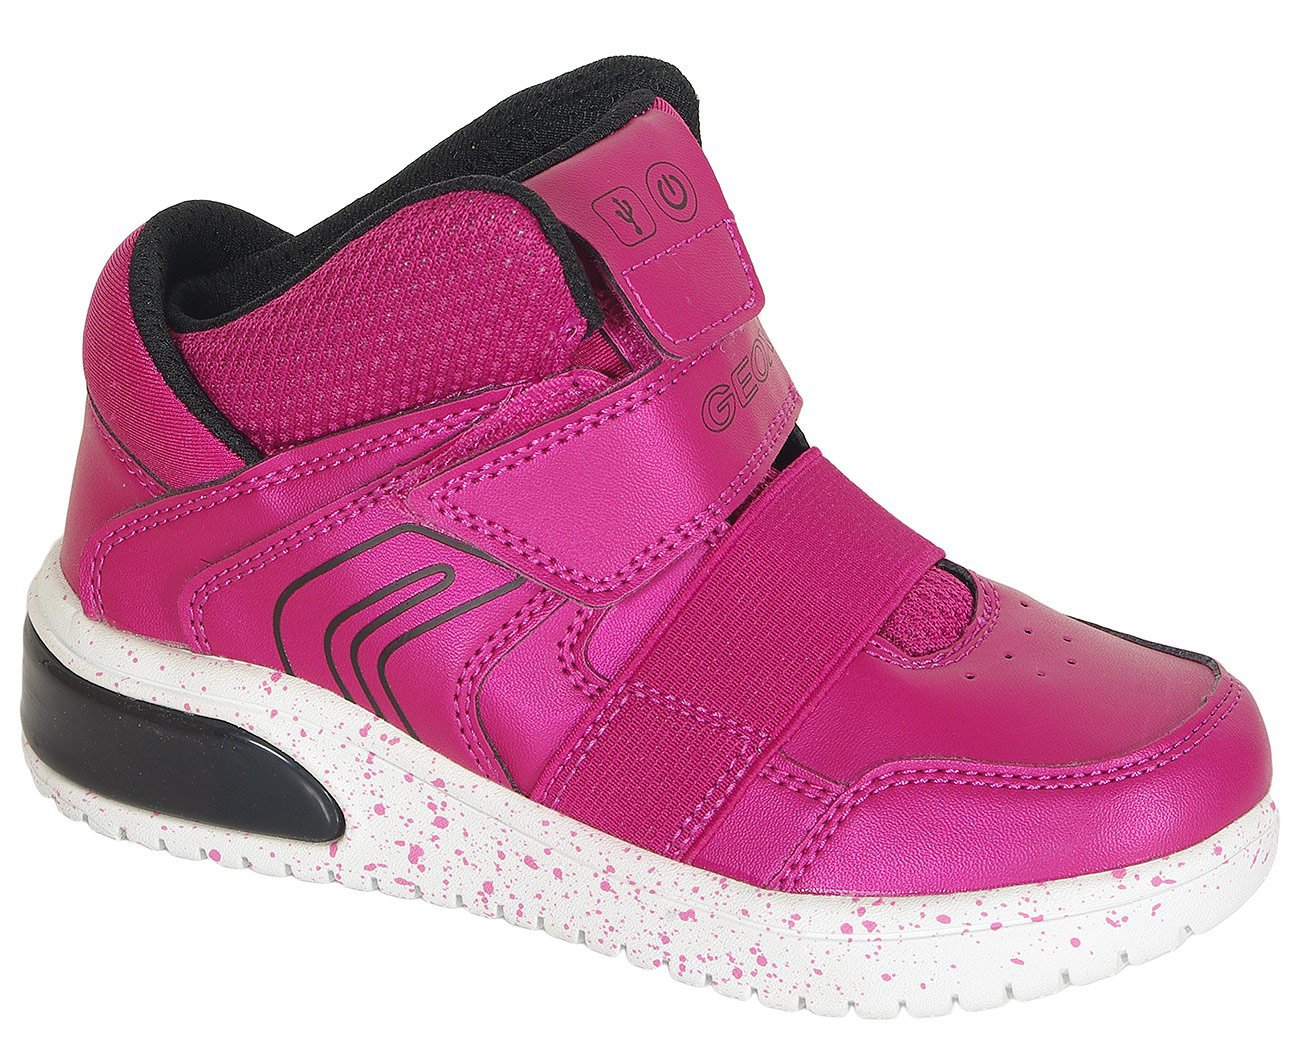 Geox Xled A sneakers girl synthetic/textile fuchsia/black